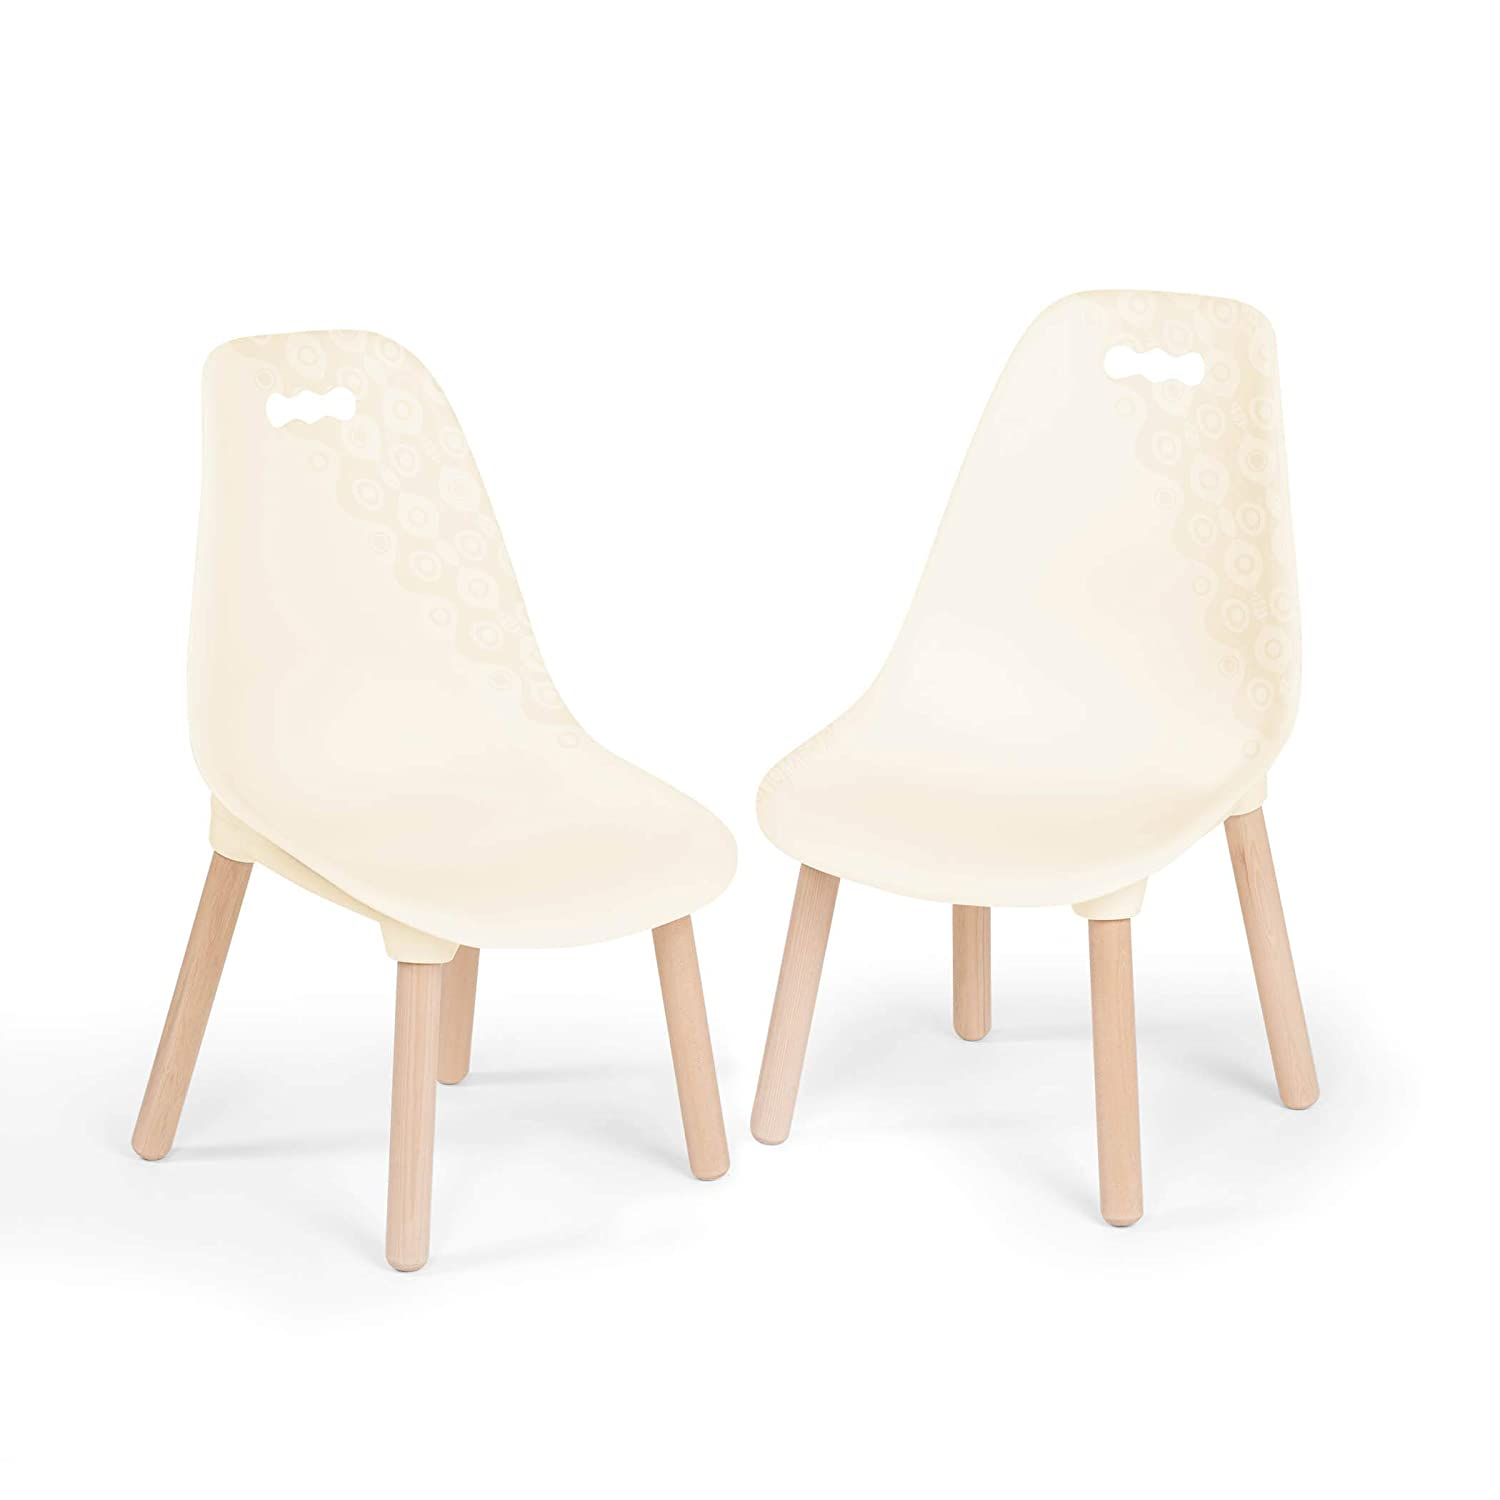 B. Spaces durch Battat - Kid Century Modern: Chair Satz &Ndash; Trendy Kid-Sized Furniture Satz von zwei Chairs bei Ivory